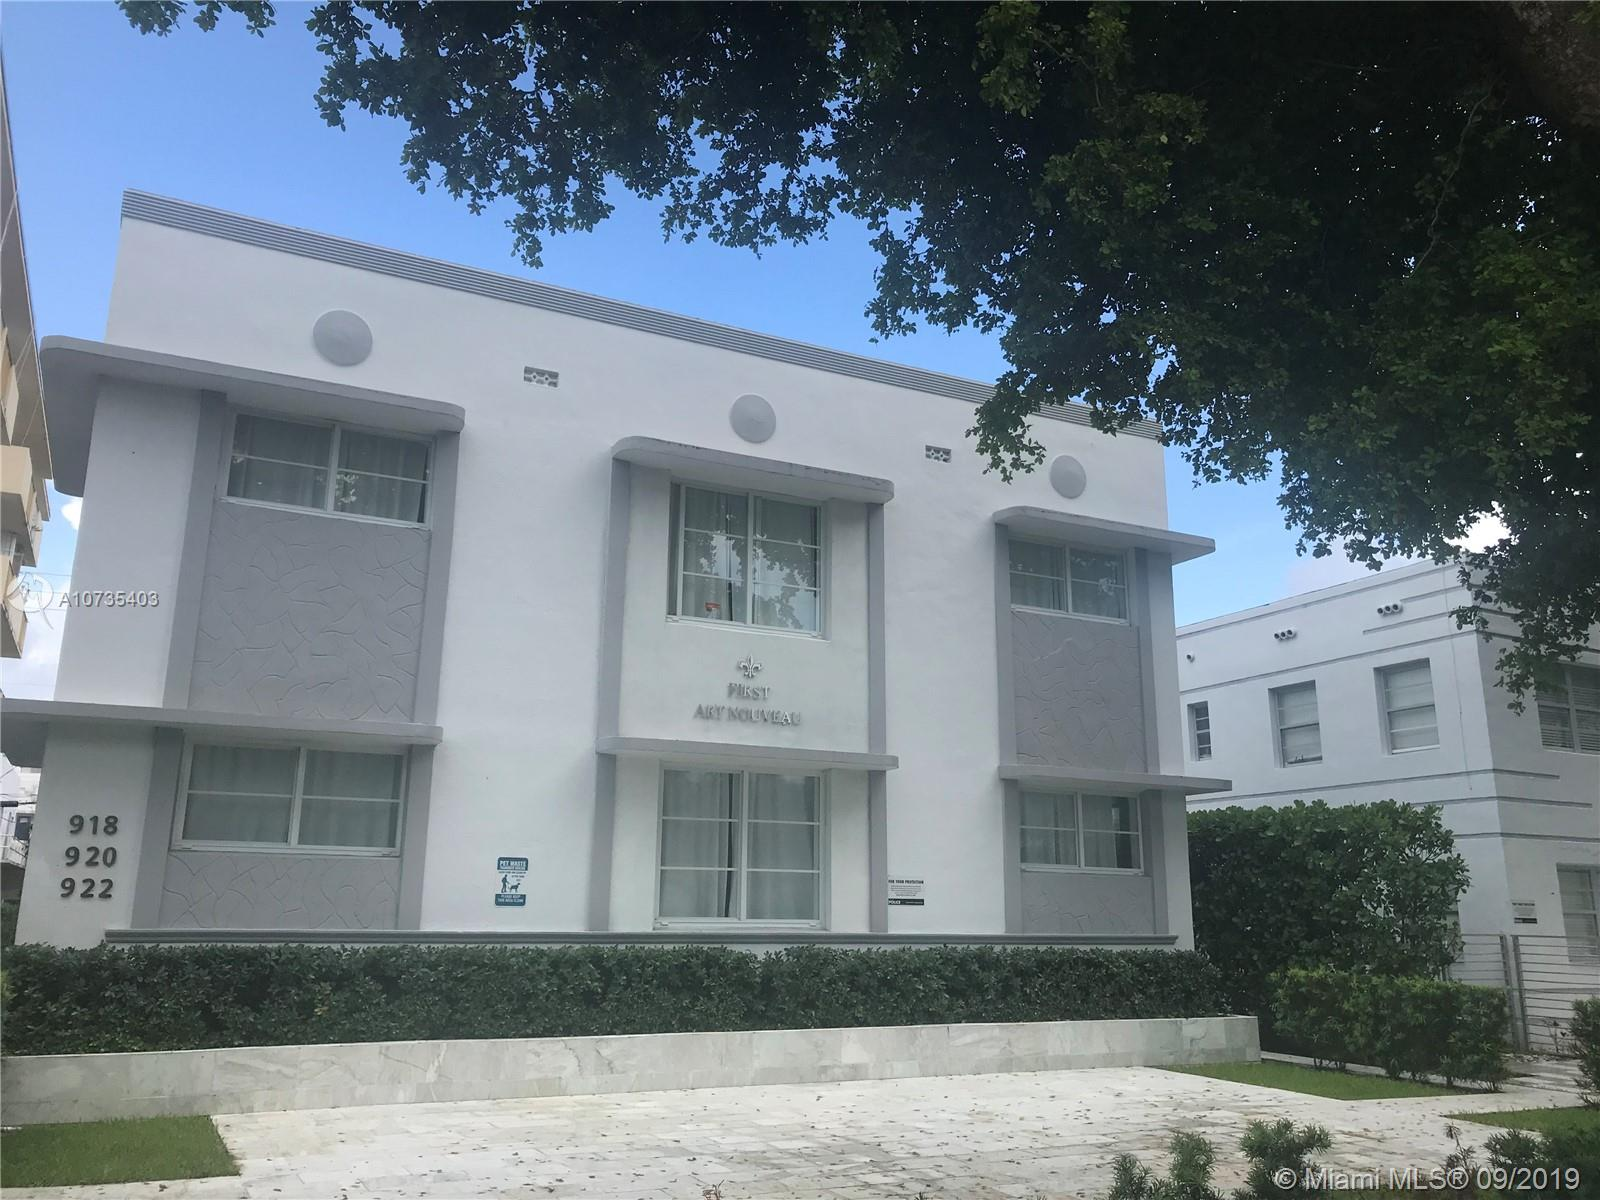 920  Jefferson Ave #4 For Sale A10735403, FL